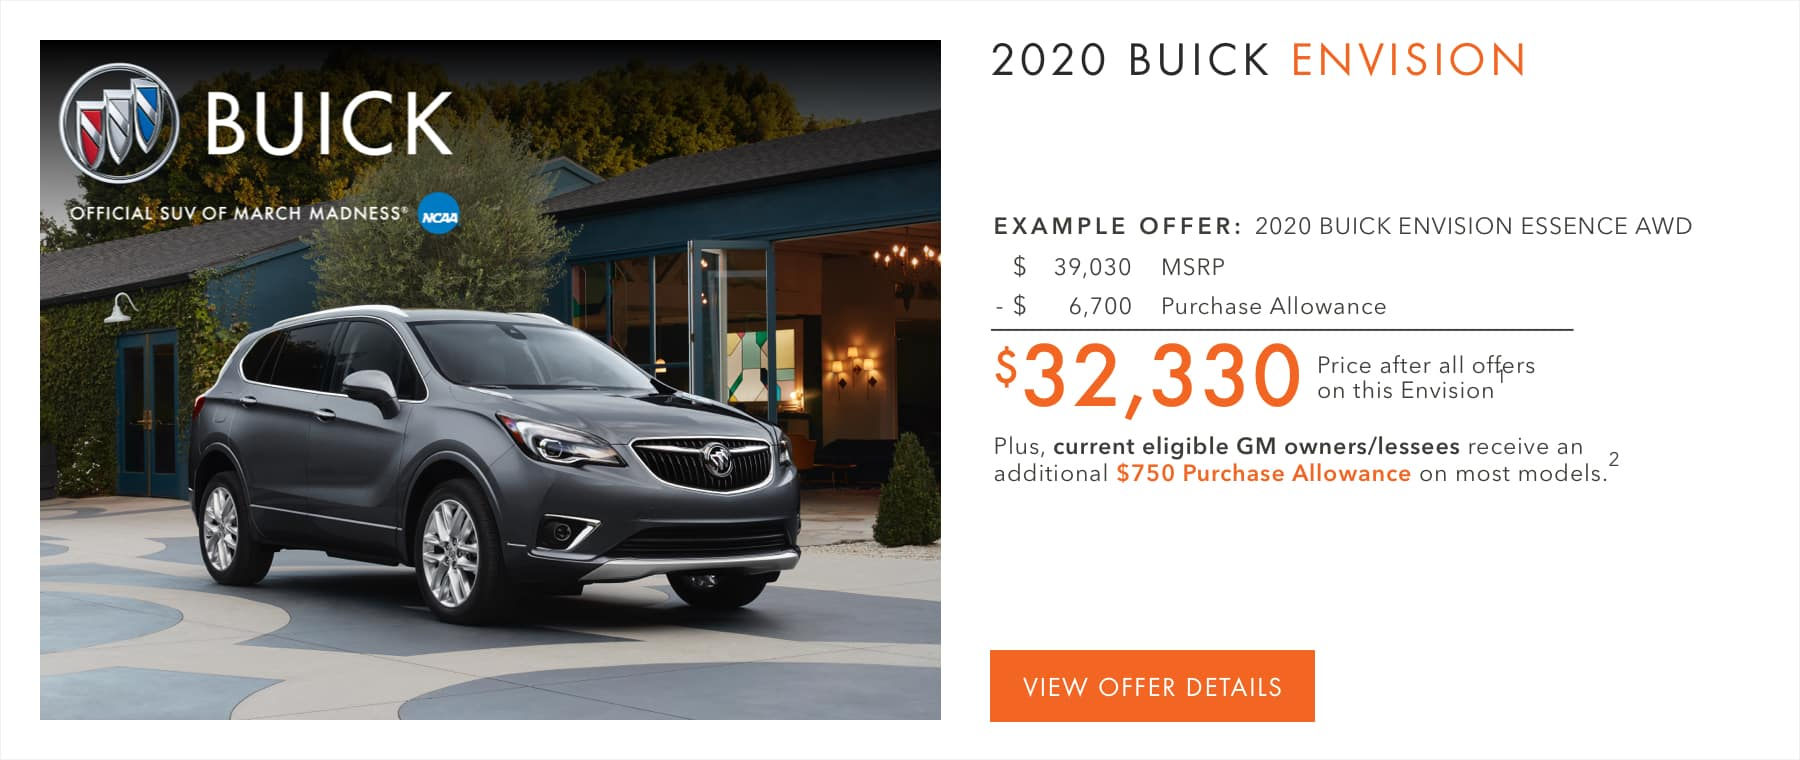 $6,700 Purchase Allowance on most models.1 Plus, current eligible Buick or GMC owners/lessees receive an additional $750 Purchase Allowance on most models.2